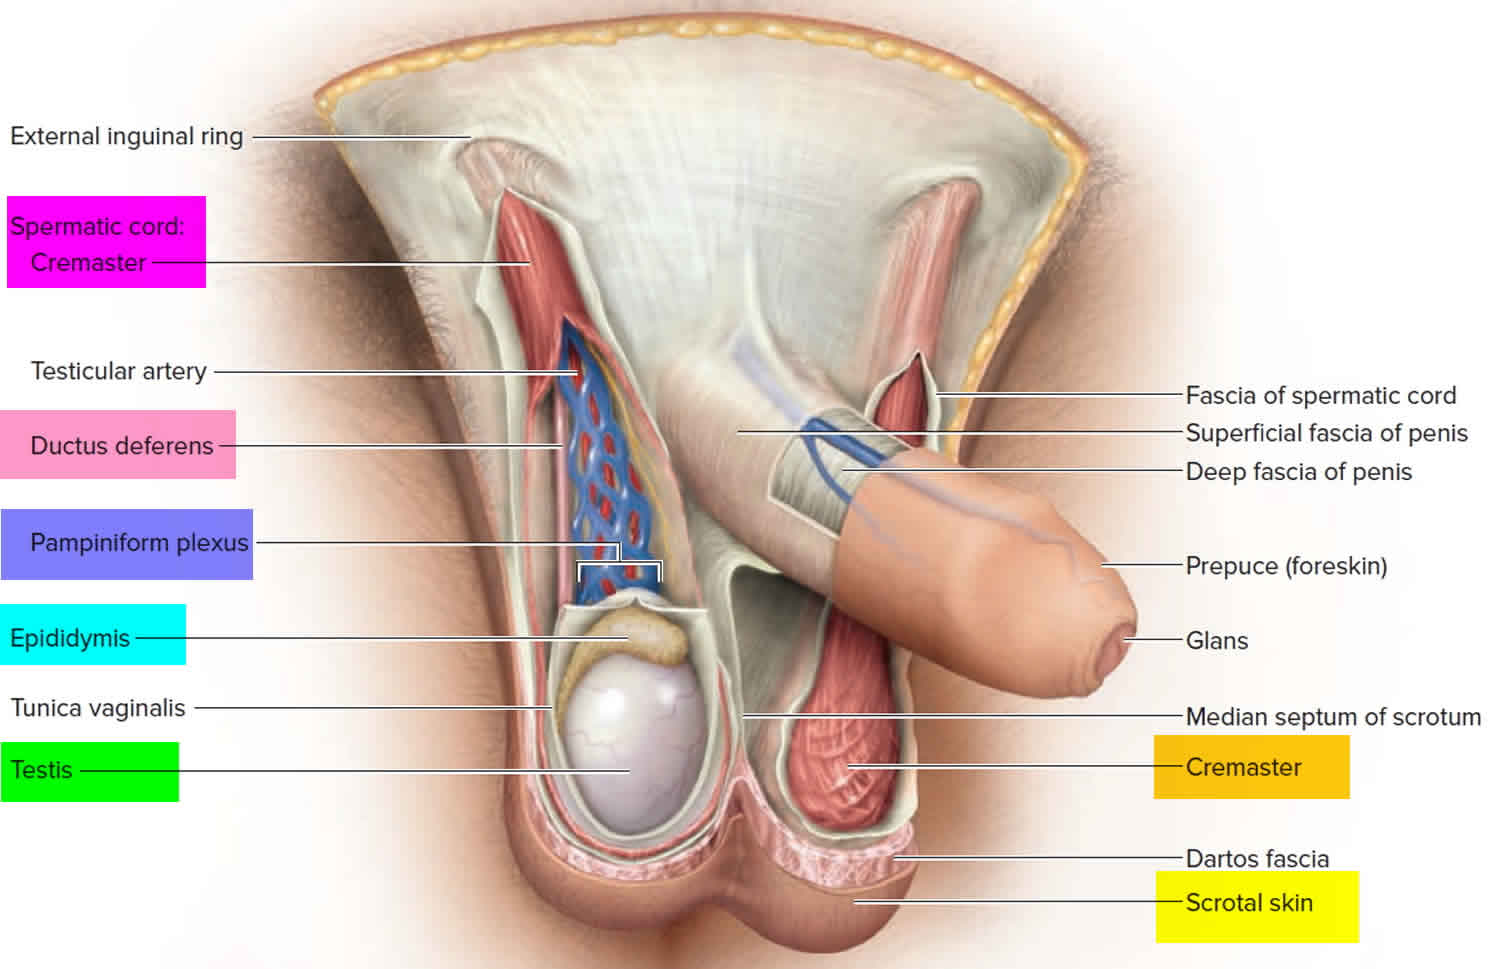 Testicles and scrotum anatomy